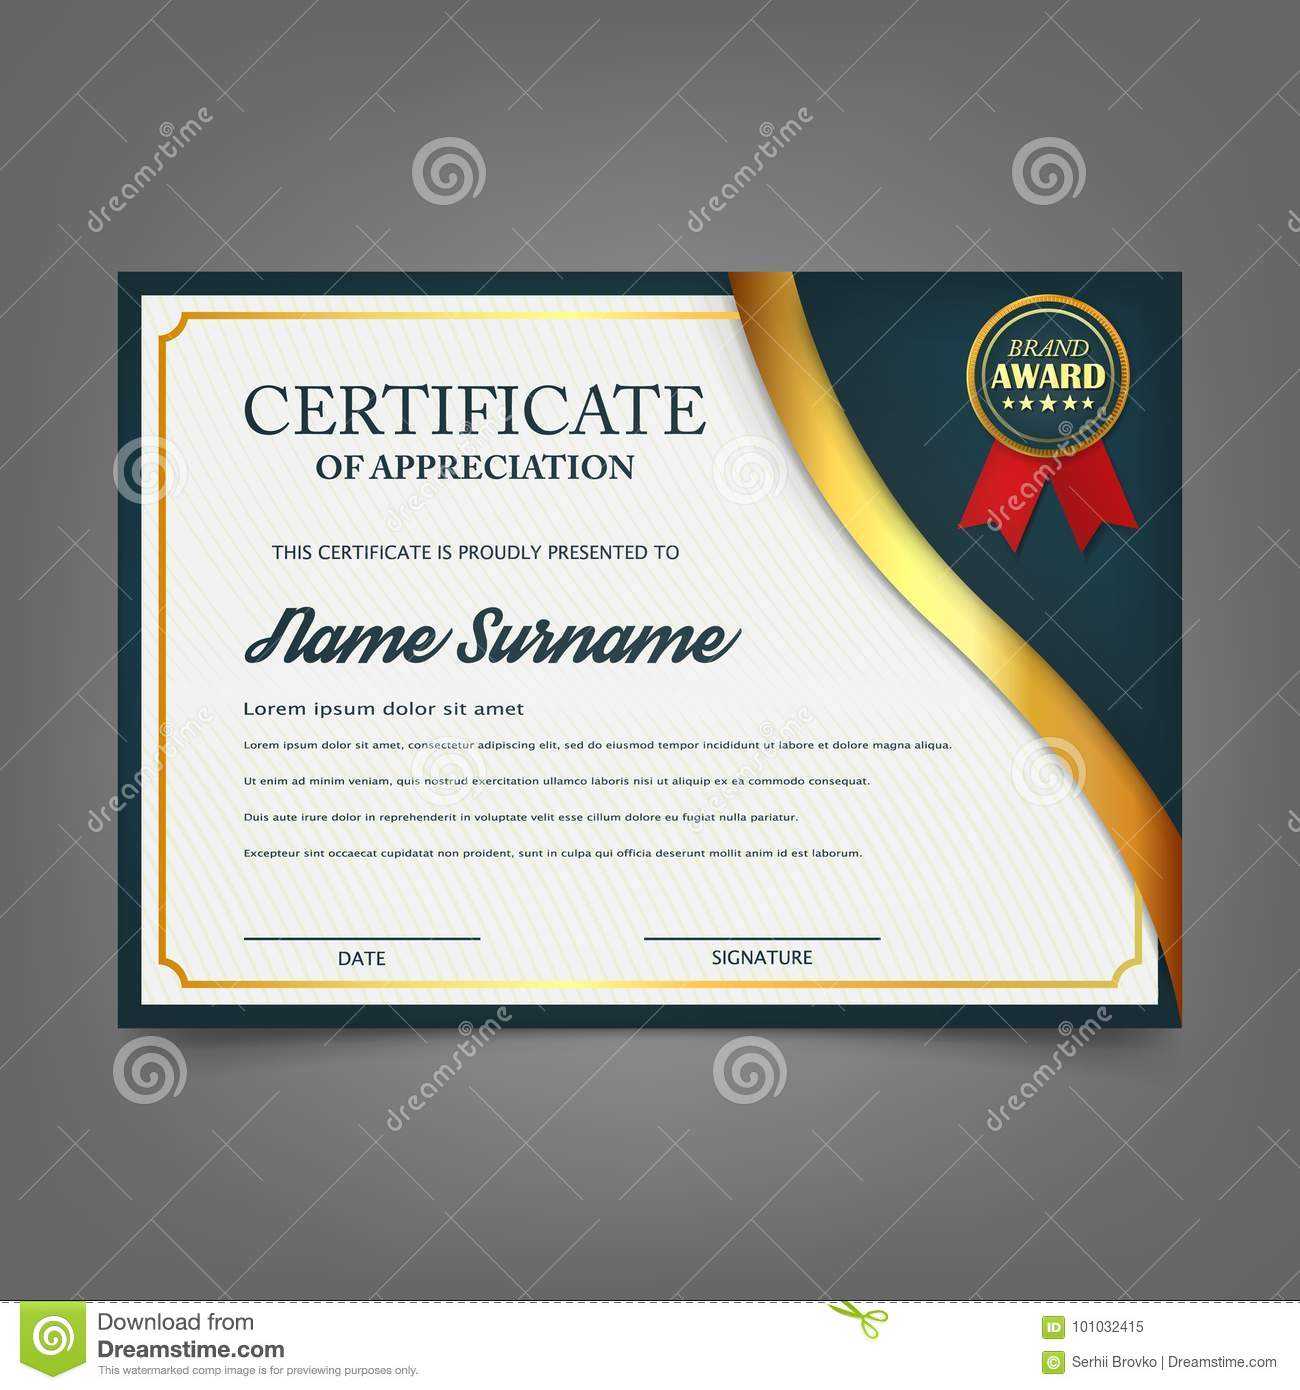 Creative Certificate Of Appreciation Award Template. Certificate Template  Design With Best Award Symbol And Blue And Golden Shapes  Creative Certificate Designs